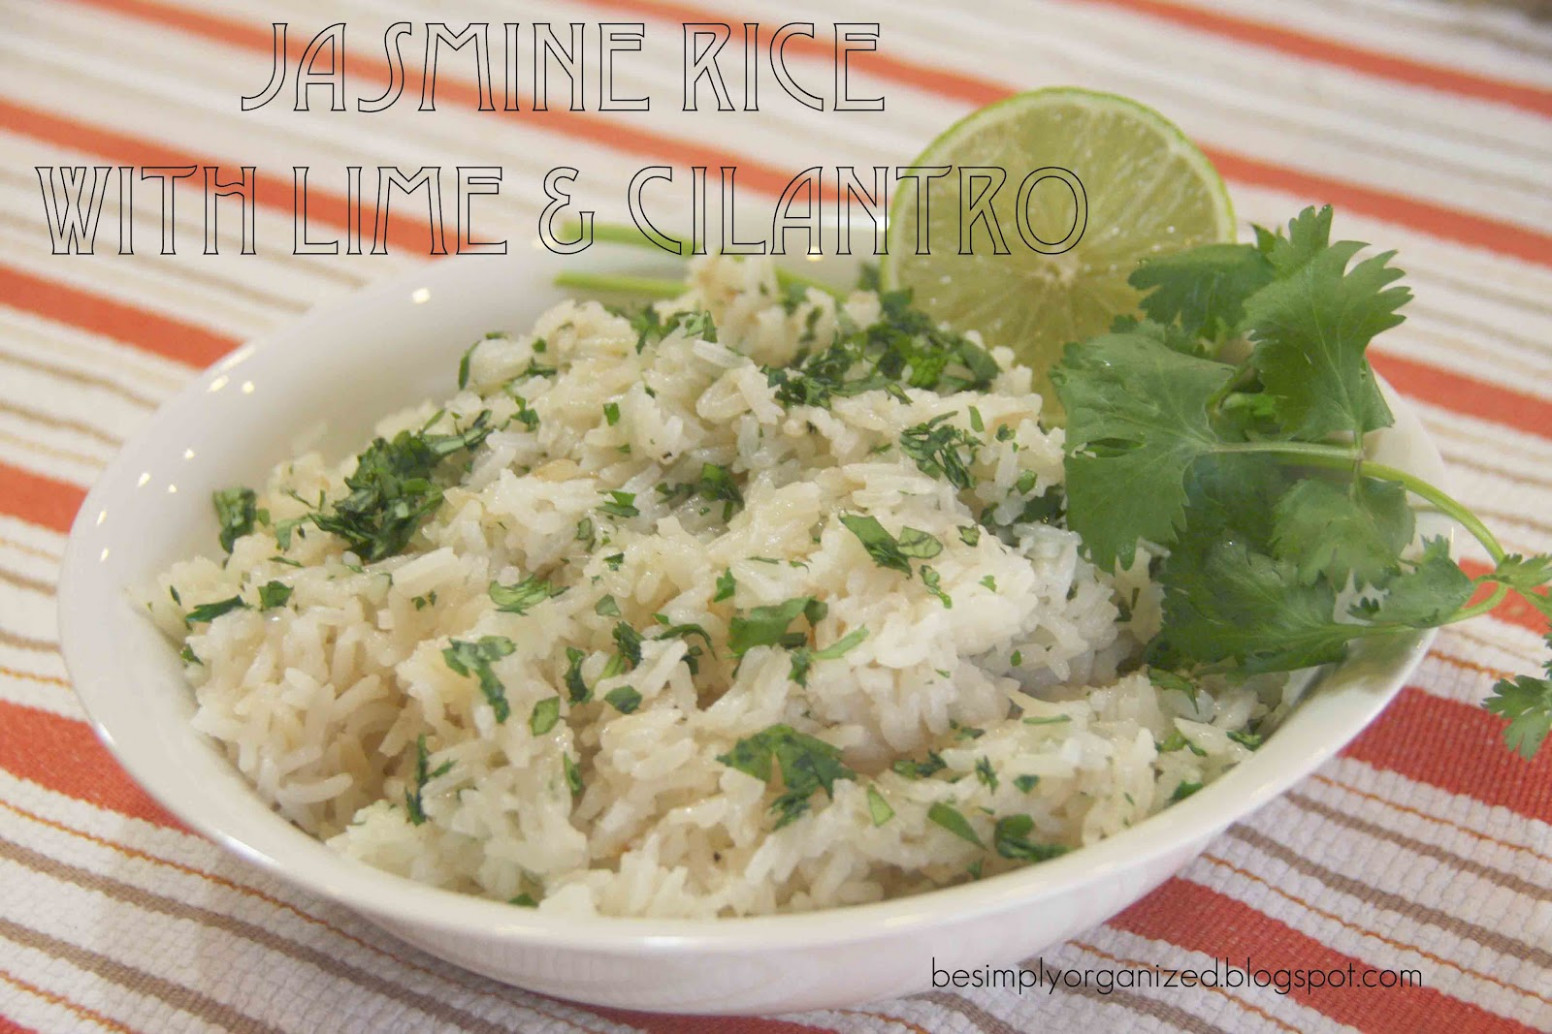 simply organized: recipe: jasmine rice with lime and cilantro